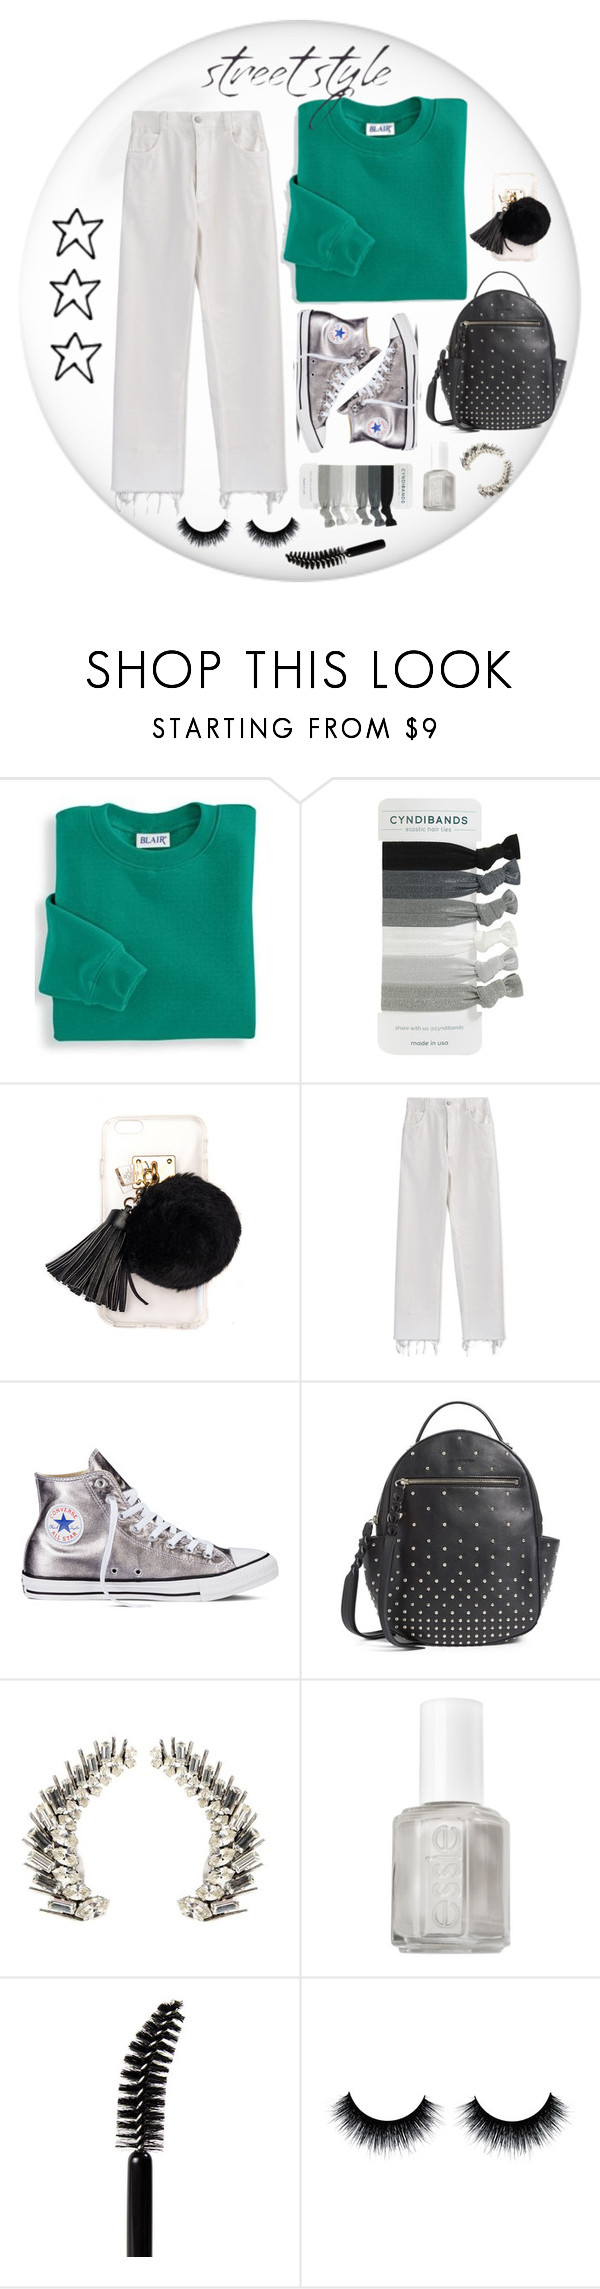 """👽"" by sari770 ❤ liked on Polyvore featuring Blair, Ashlyn'd, Rachel Comey, Converse, Alexander McQueen, Yves Saint Laurent, Essie and LORAC"